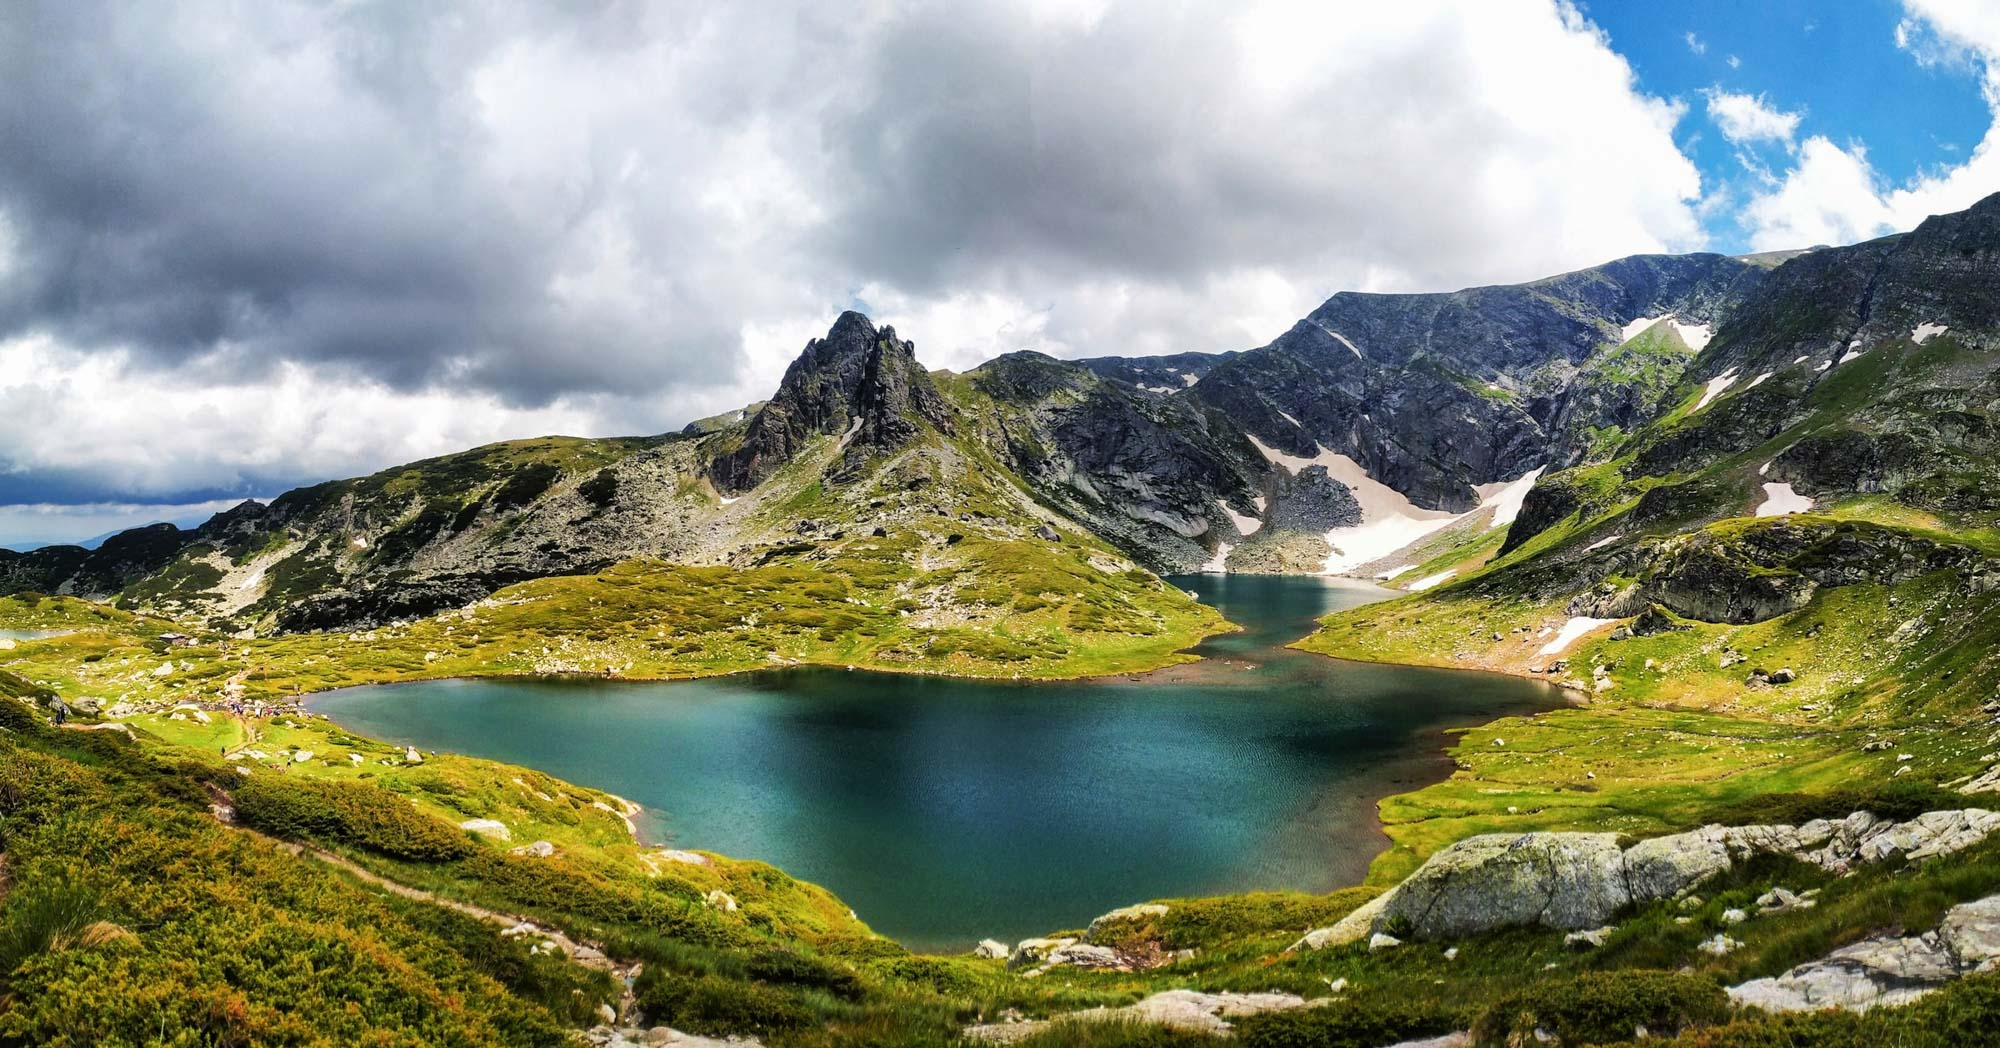 Rila Lakes: Property For Sale In Bulgaria